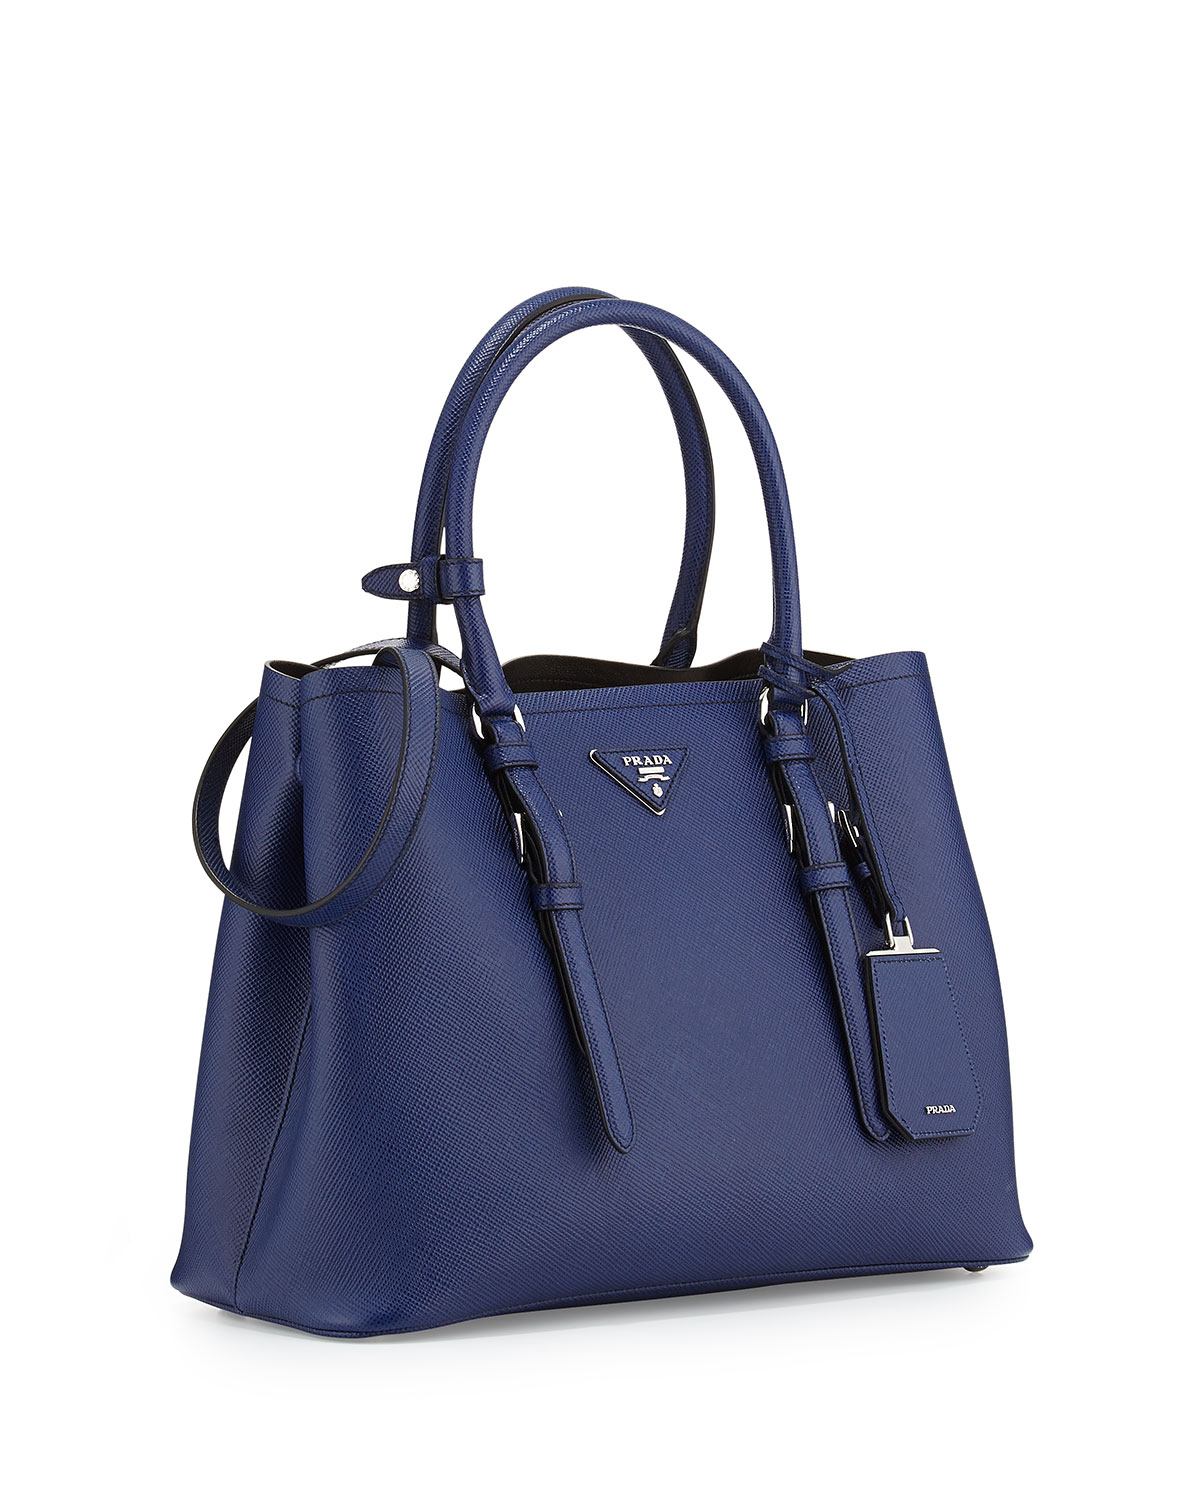 01d2f994e2f4 ... uk lyst prada saffiano cuir covered strap double bag in blue cd15b  d5762 ...